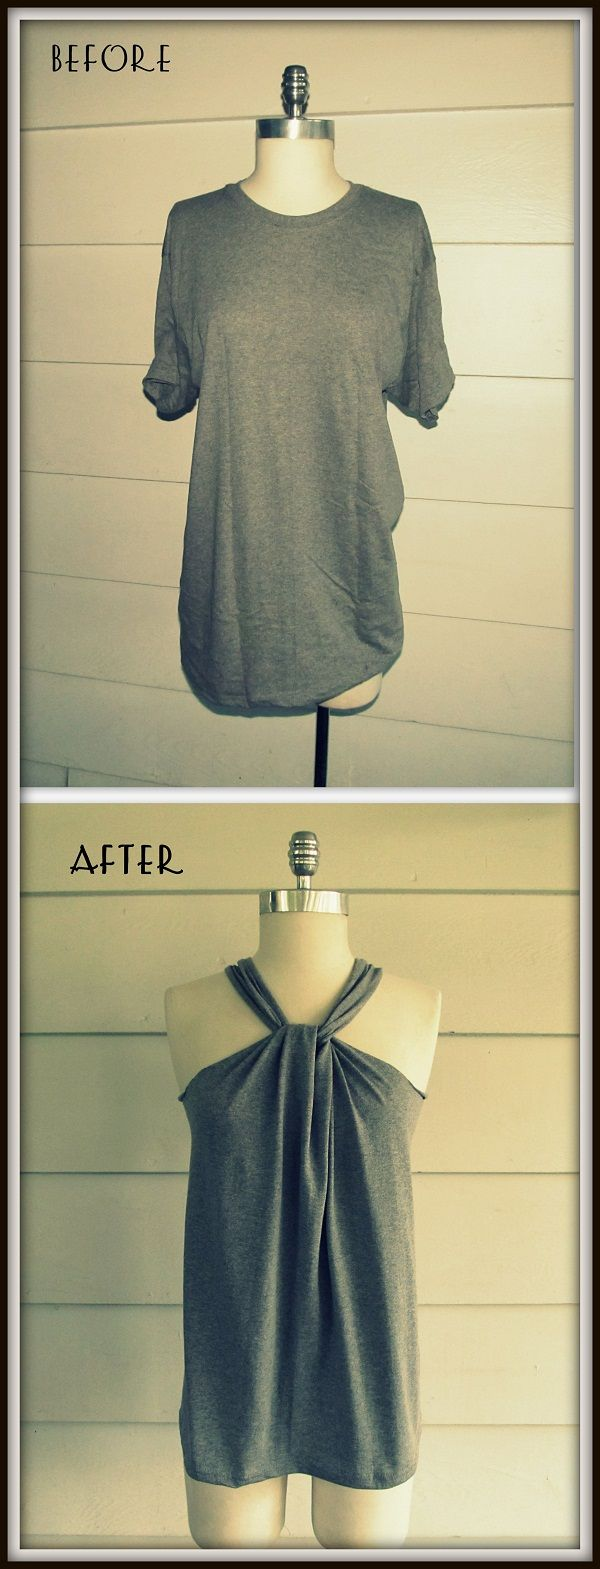 6944084e599 Make Amazing Tops   Blouses With These 20 Simple DIY Ideas